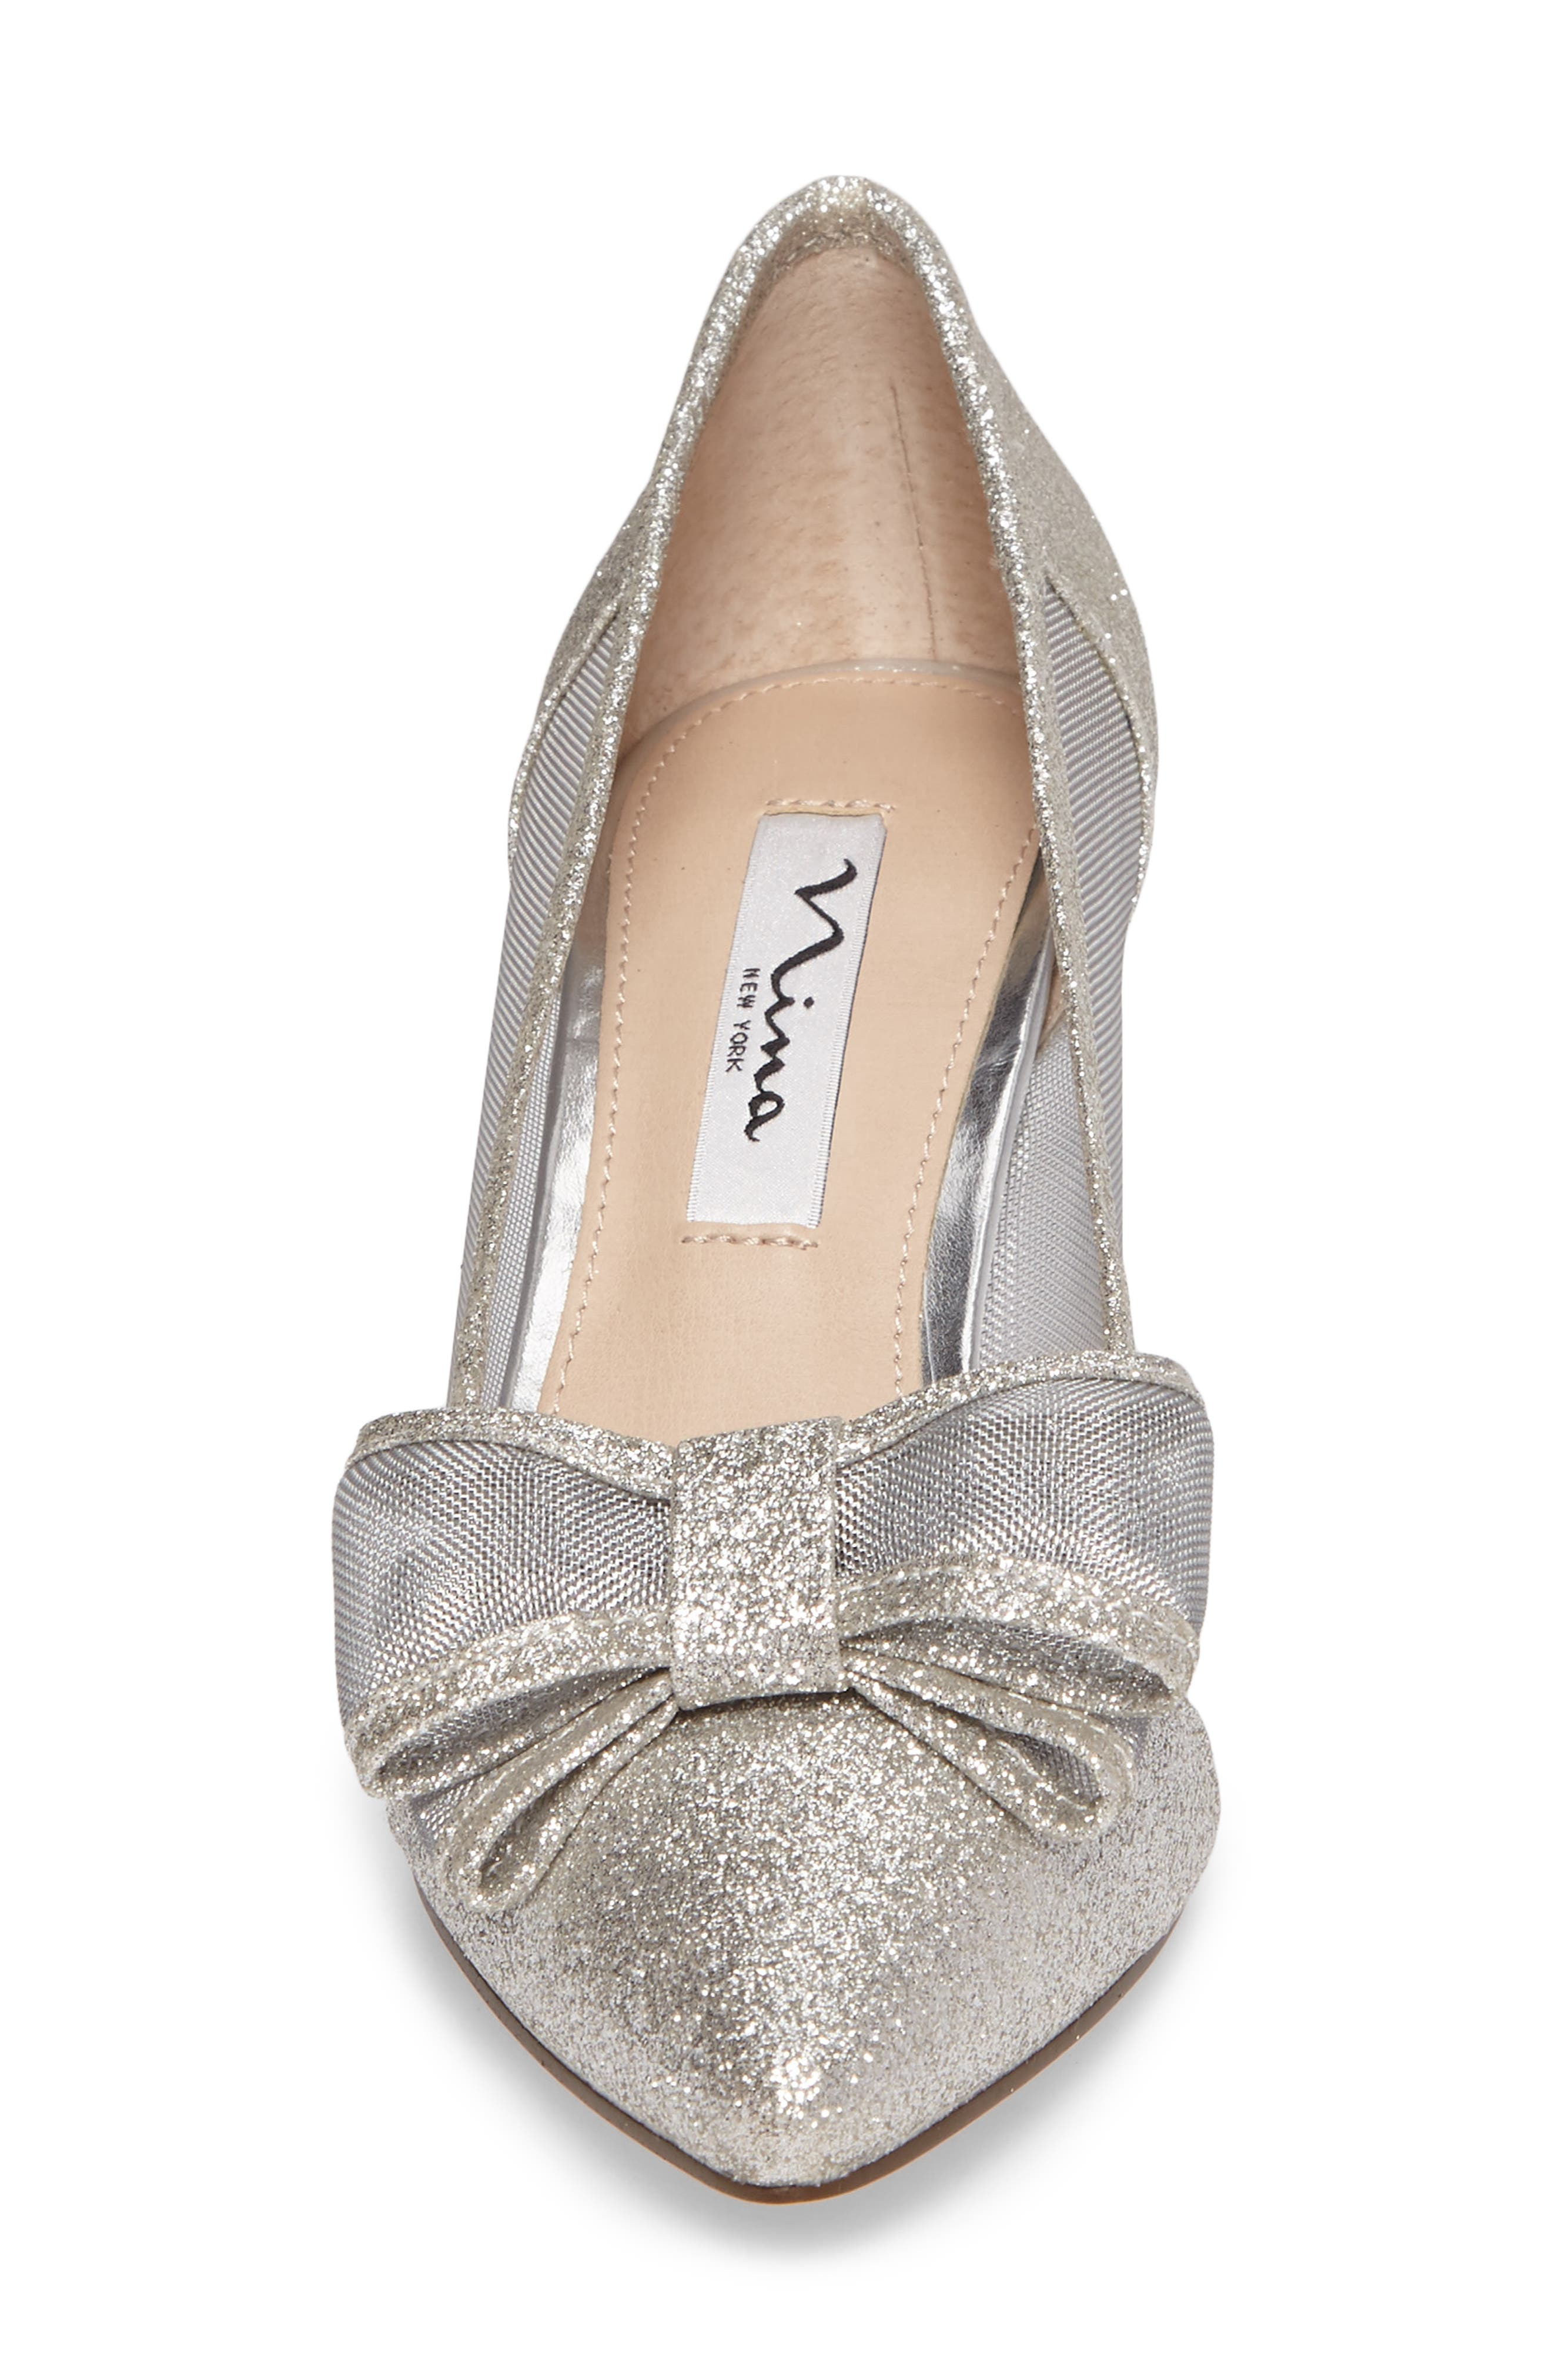 NINA, Bianca Pointy Toe Pump, Alternate thumbnail 4, color, SOFT SILVER GLITTER FABRIC